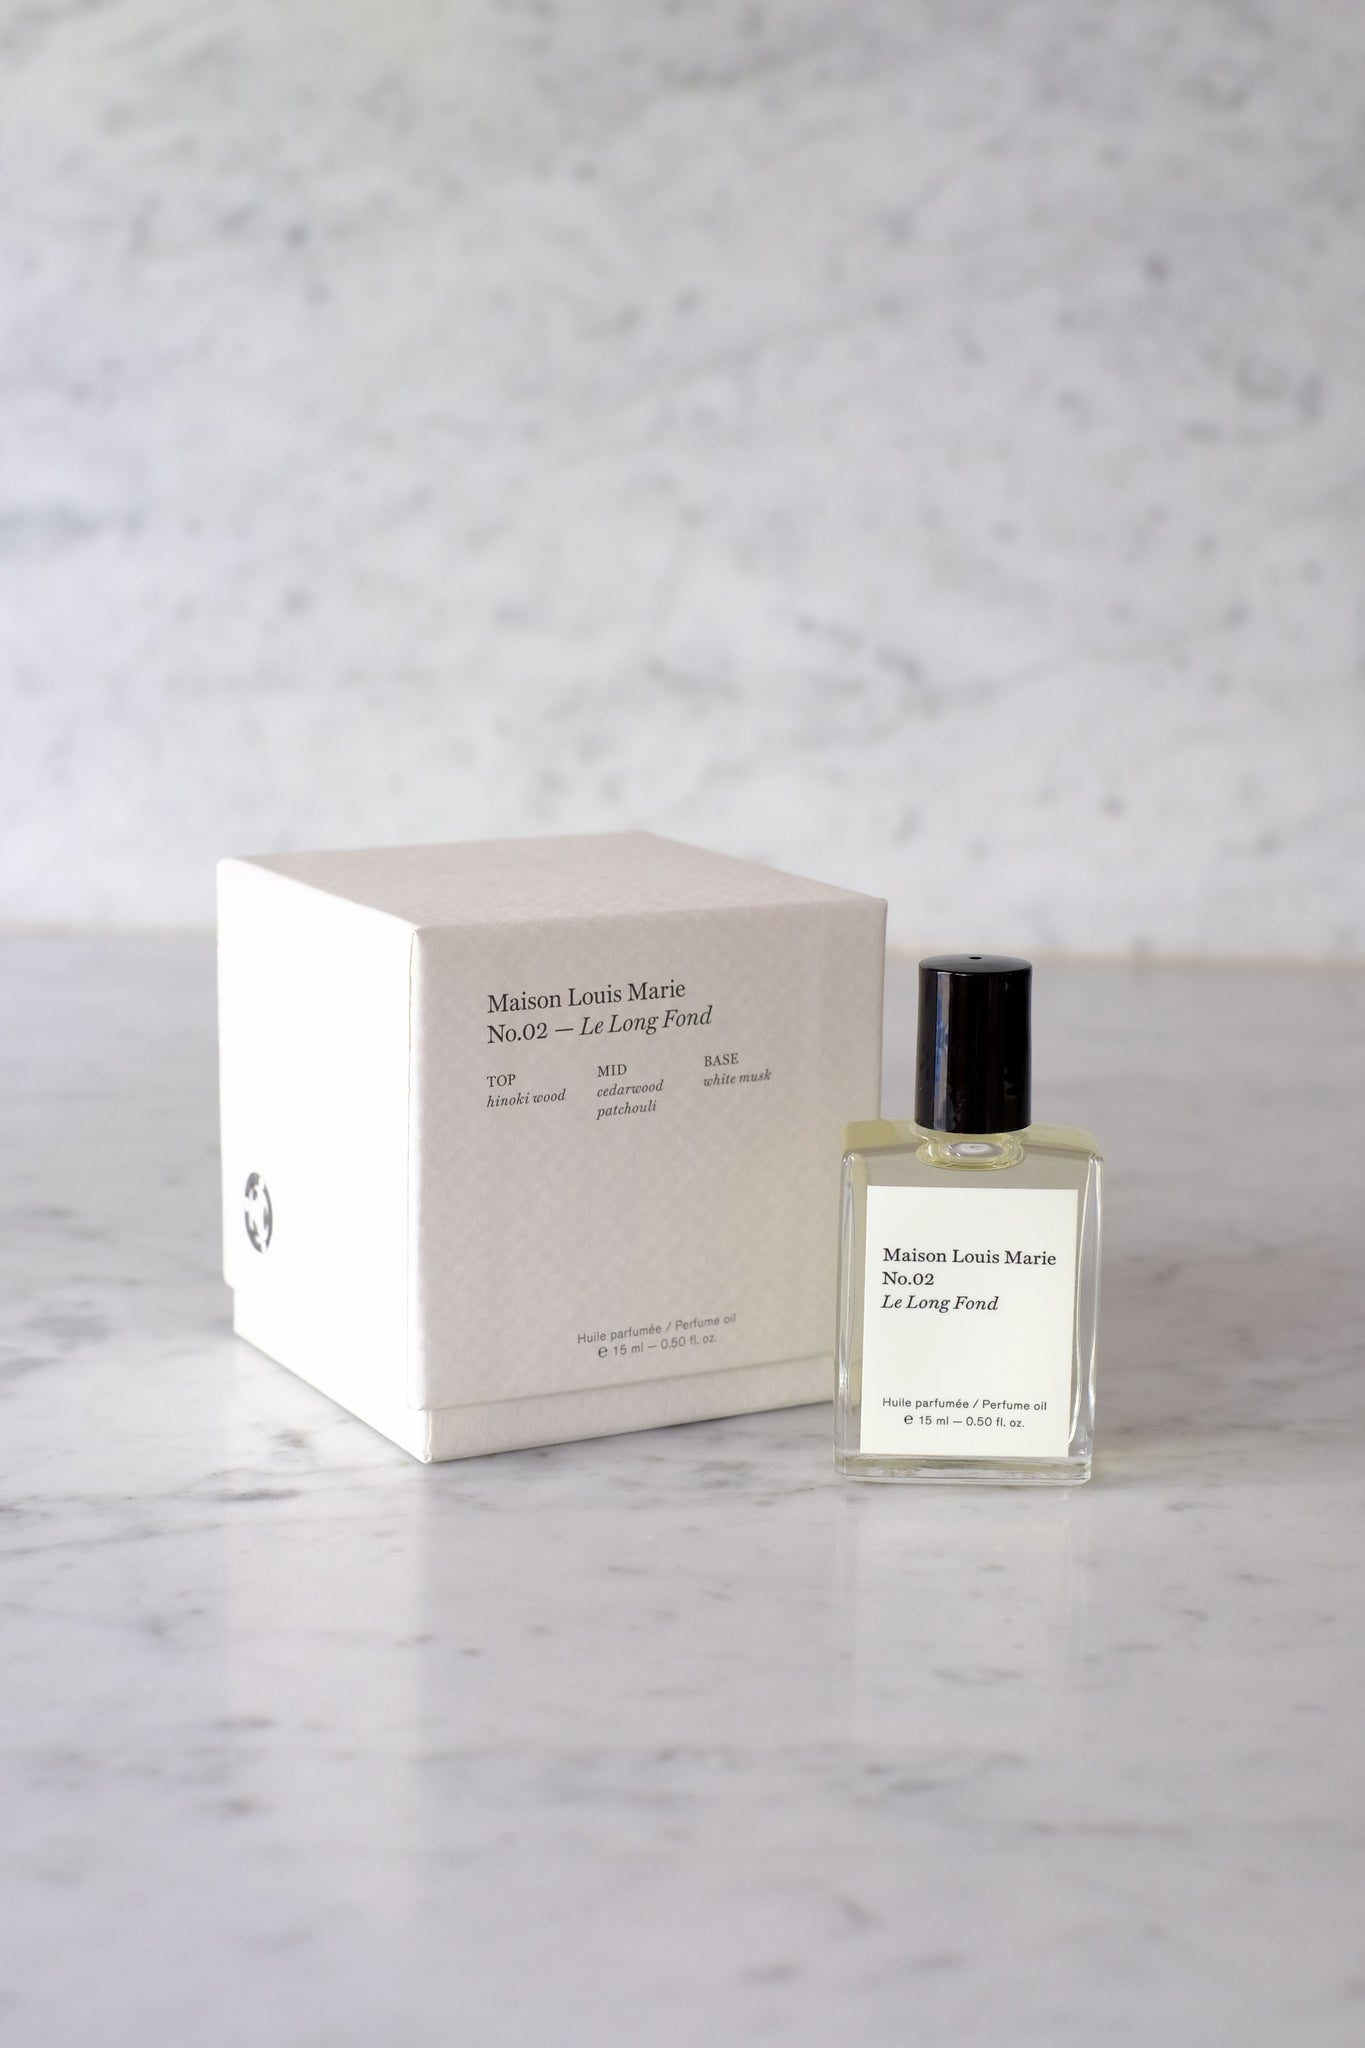 Maison Louis Marie :: Fragrance No. 02, Le Long Fond